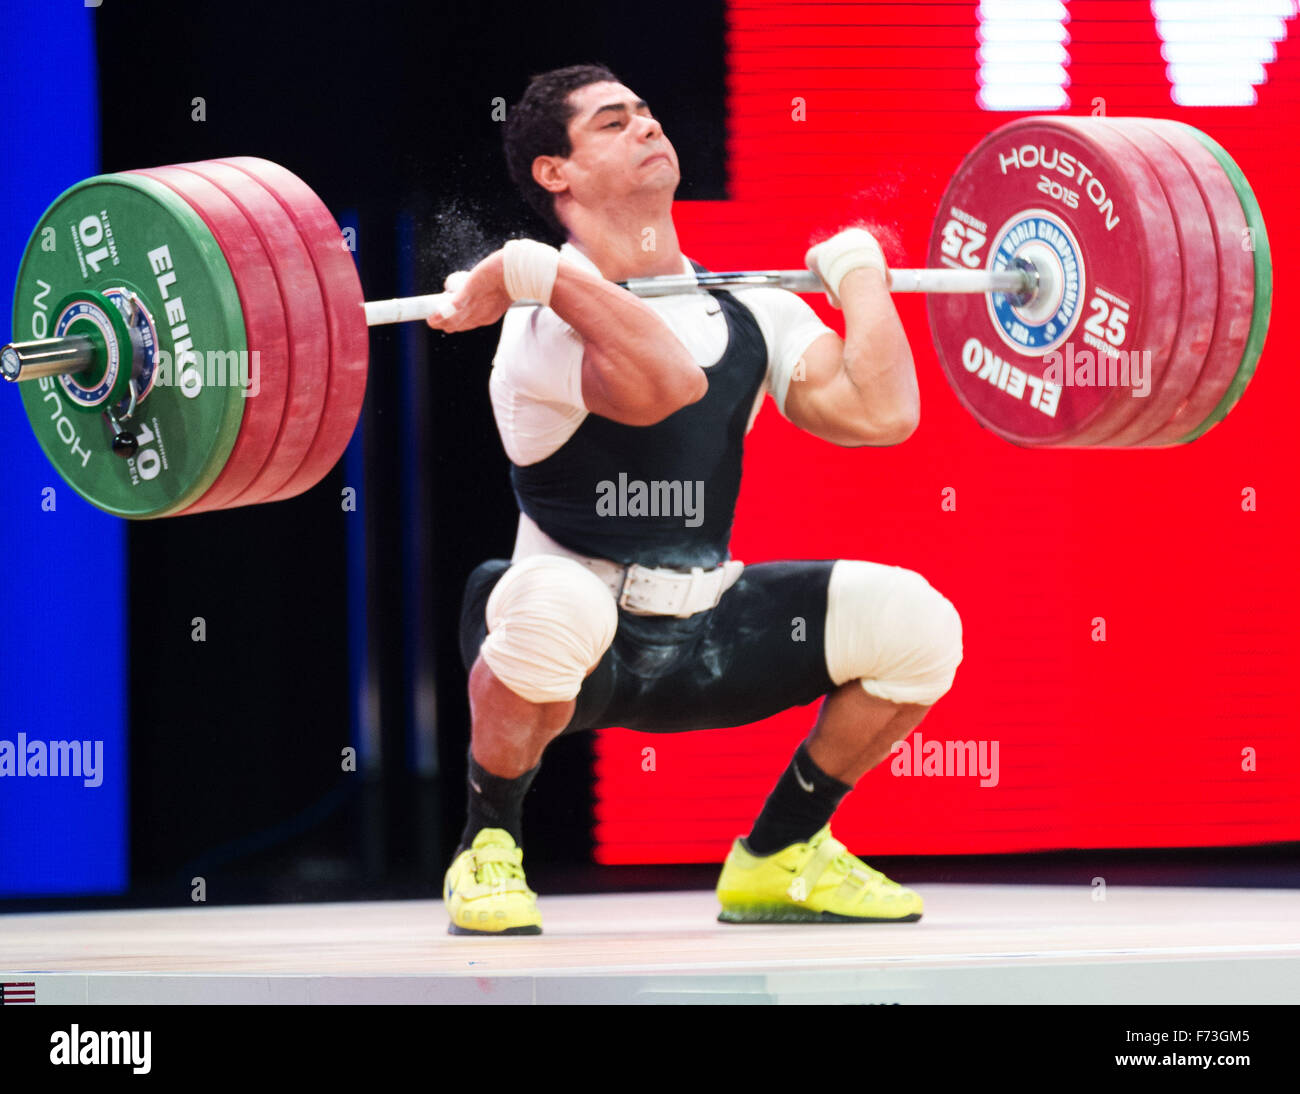 Houston, Texas, USA. 24th Nov, 2015. Youssef Mohamed Ihab lifts 197 kilograms in the clean and jerk. Ihab competed - Stock Image